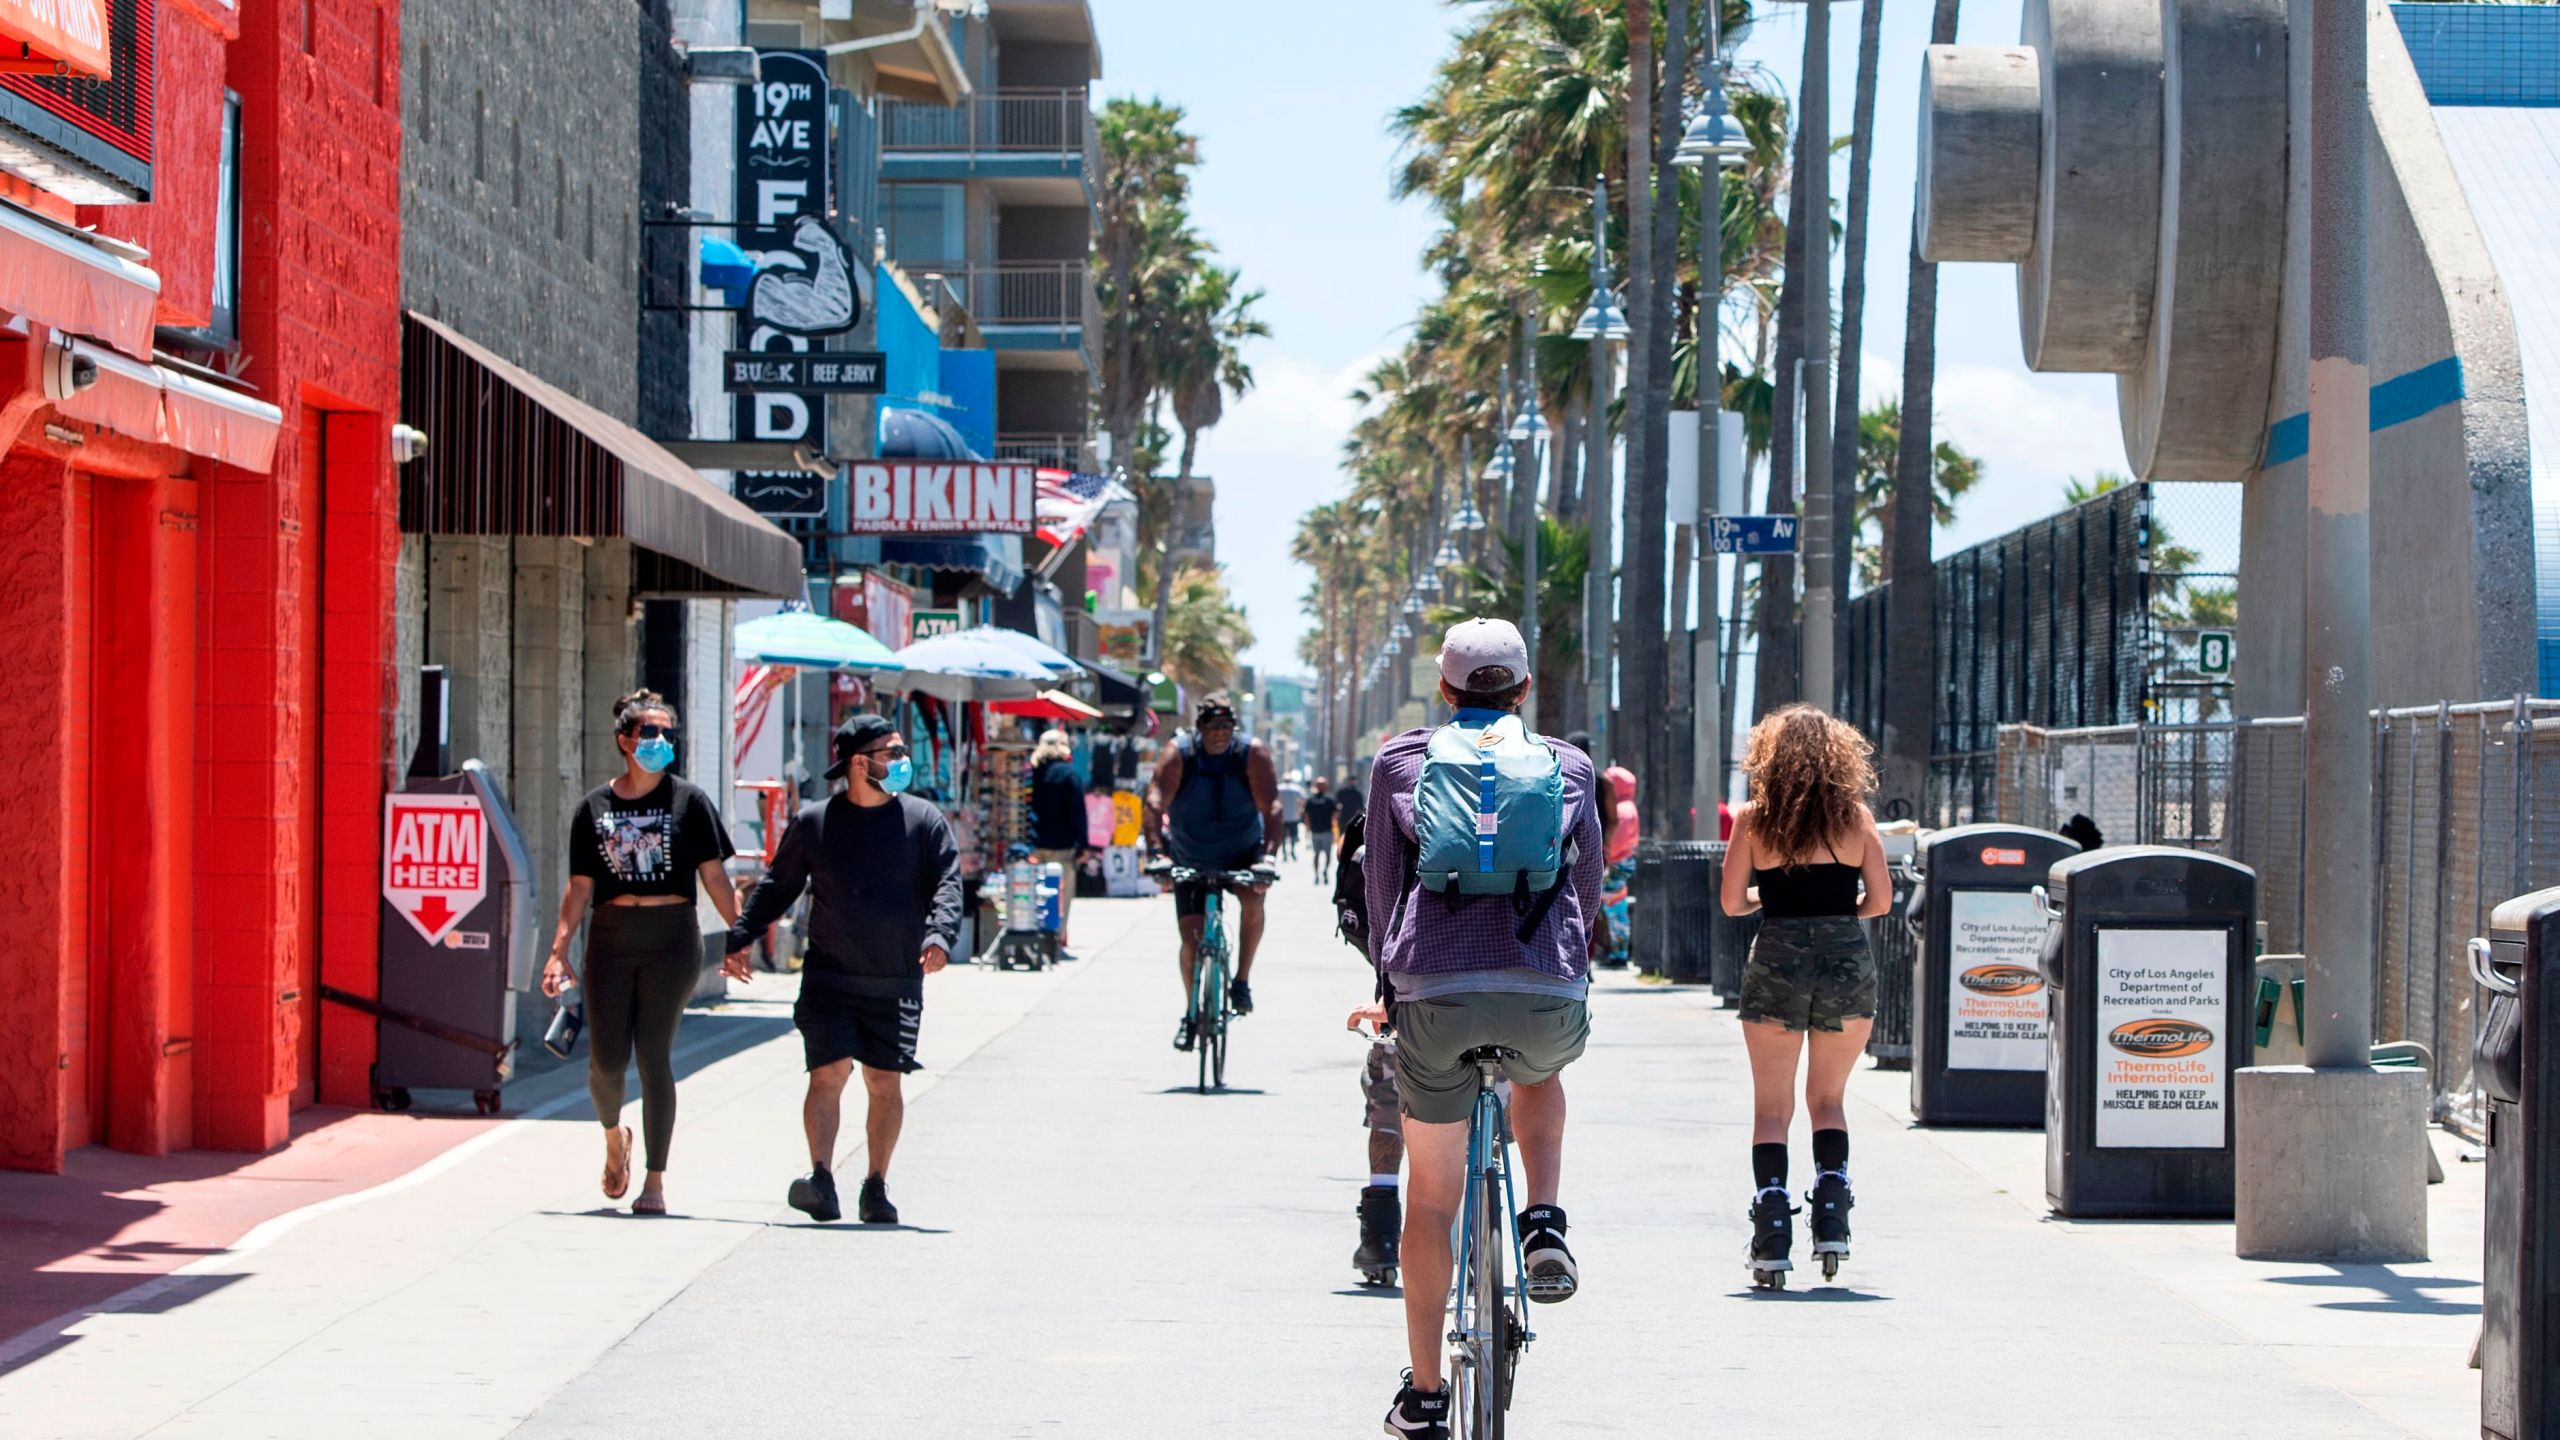 People are seen at Venice Beach on May 13, 2020. (VALERIE MACON/AFP via Getty Images)